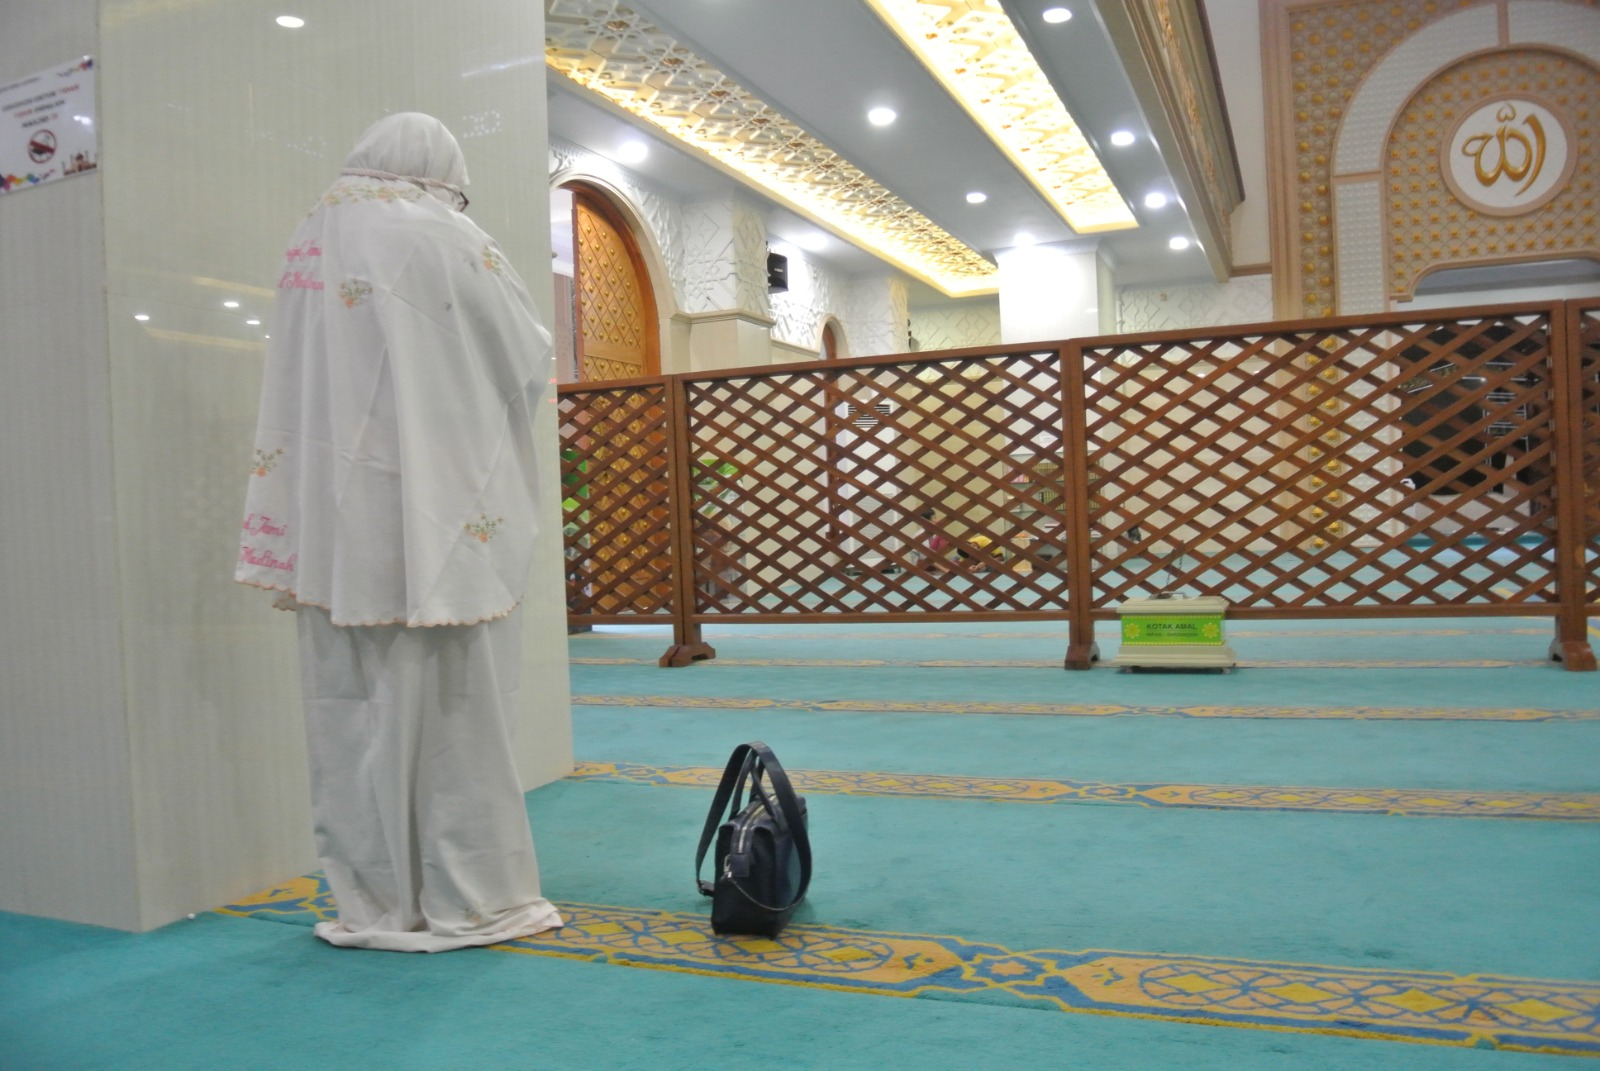 What Is the Ruling of Partition between Men and Women in the Masjid?